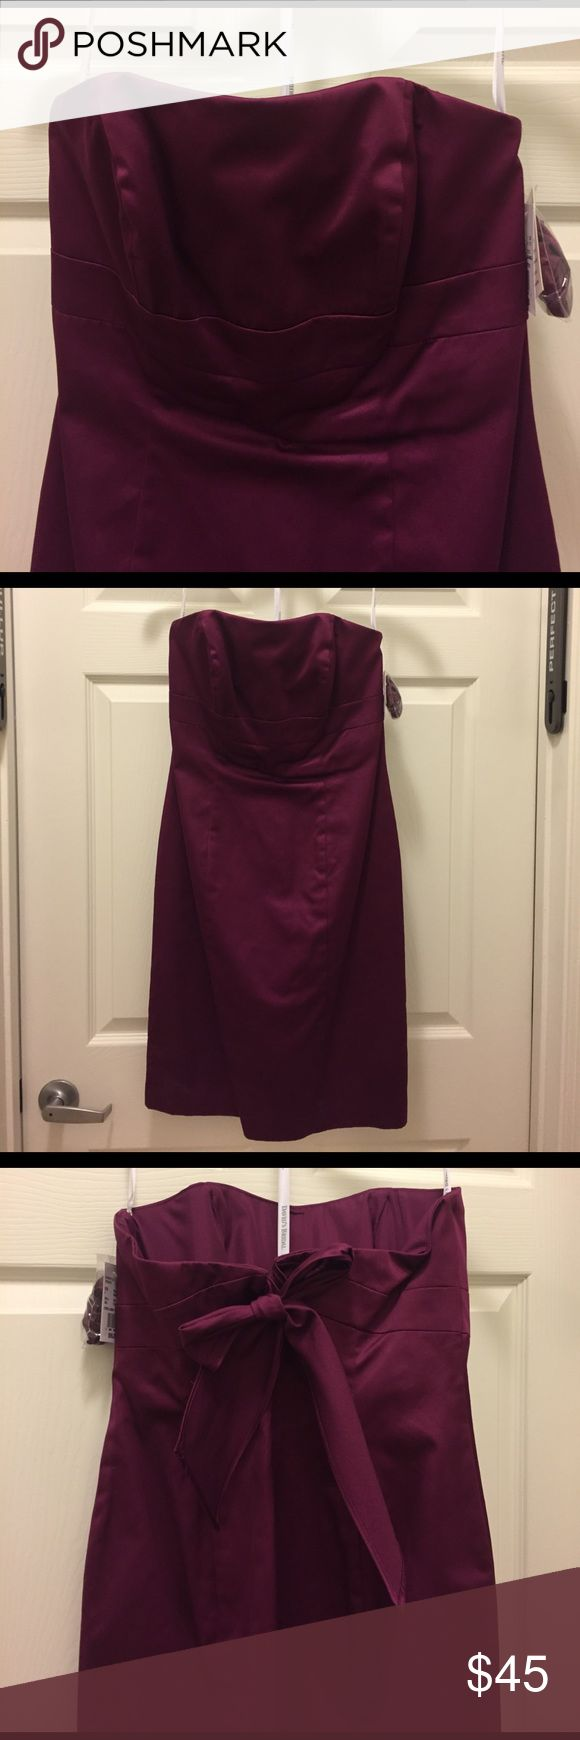 NWT David's Bridal Size 4 dress David's Bridal Size 4 dress. NWT. The color is Sangria. Shell is 100% Cotton. Lining is 100% Polyester. Hits just above the knee (I'm 5ft4) David's Bridal Dresses Wedding